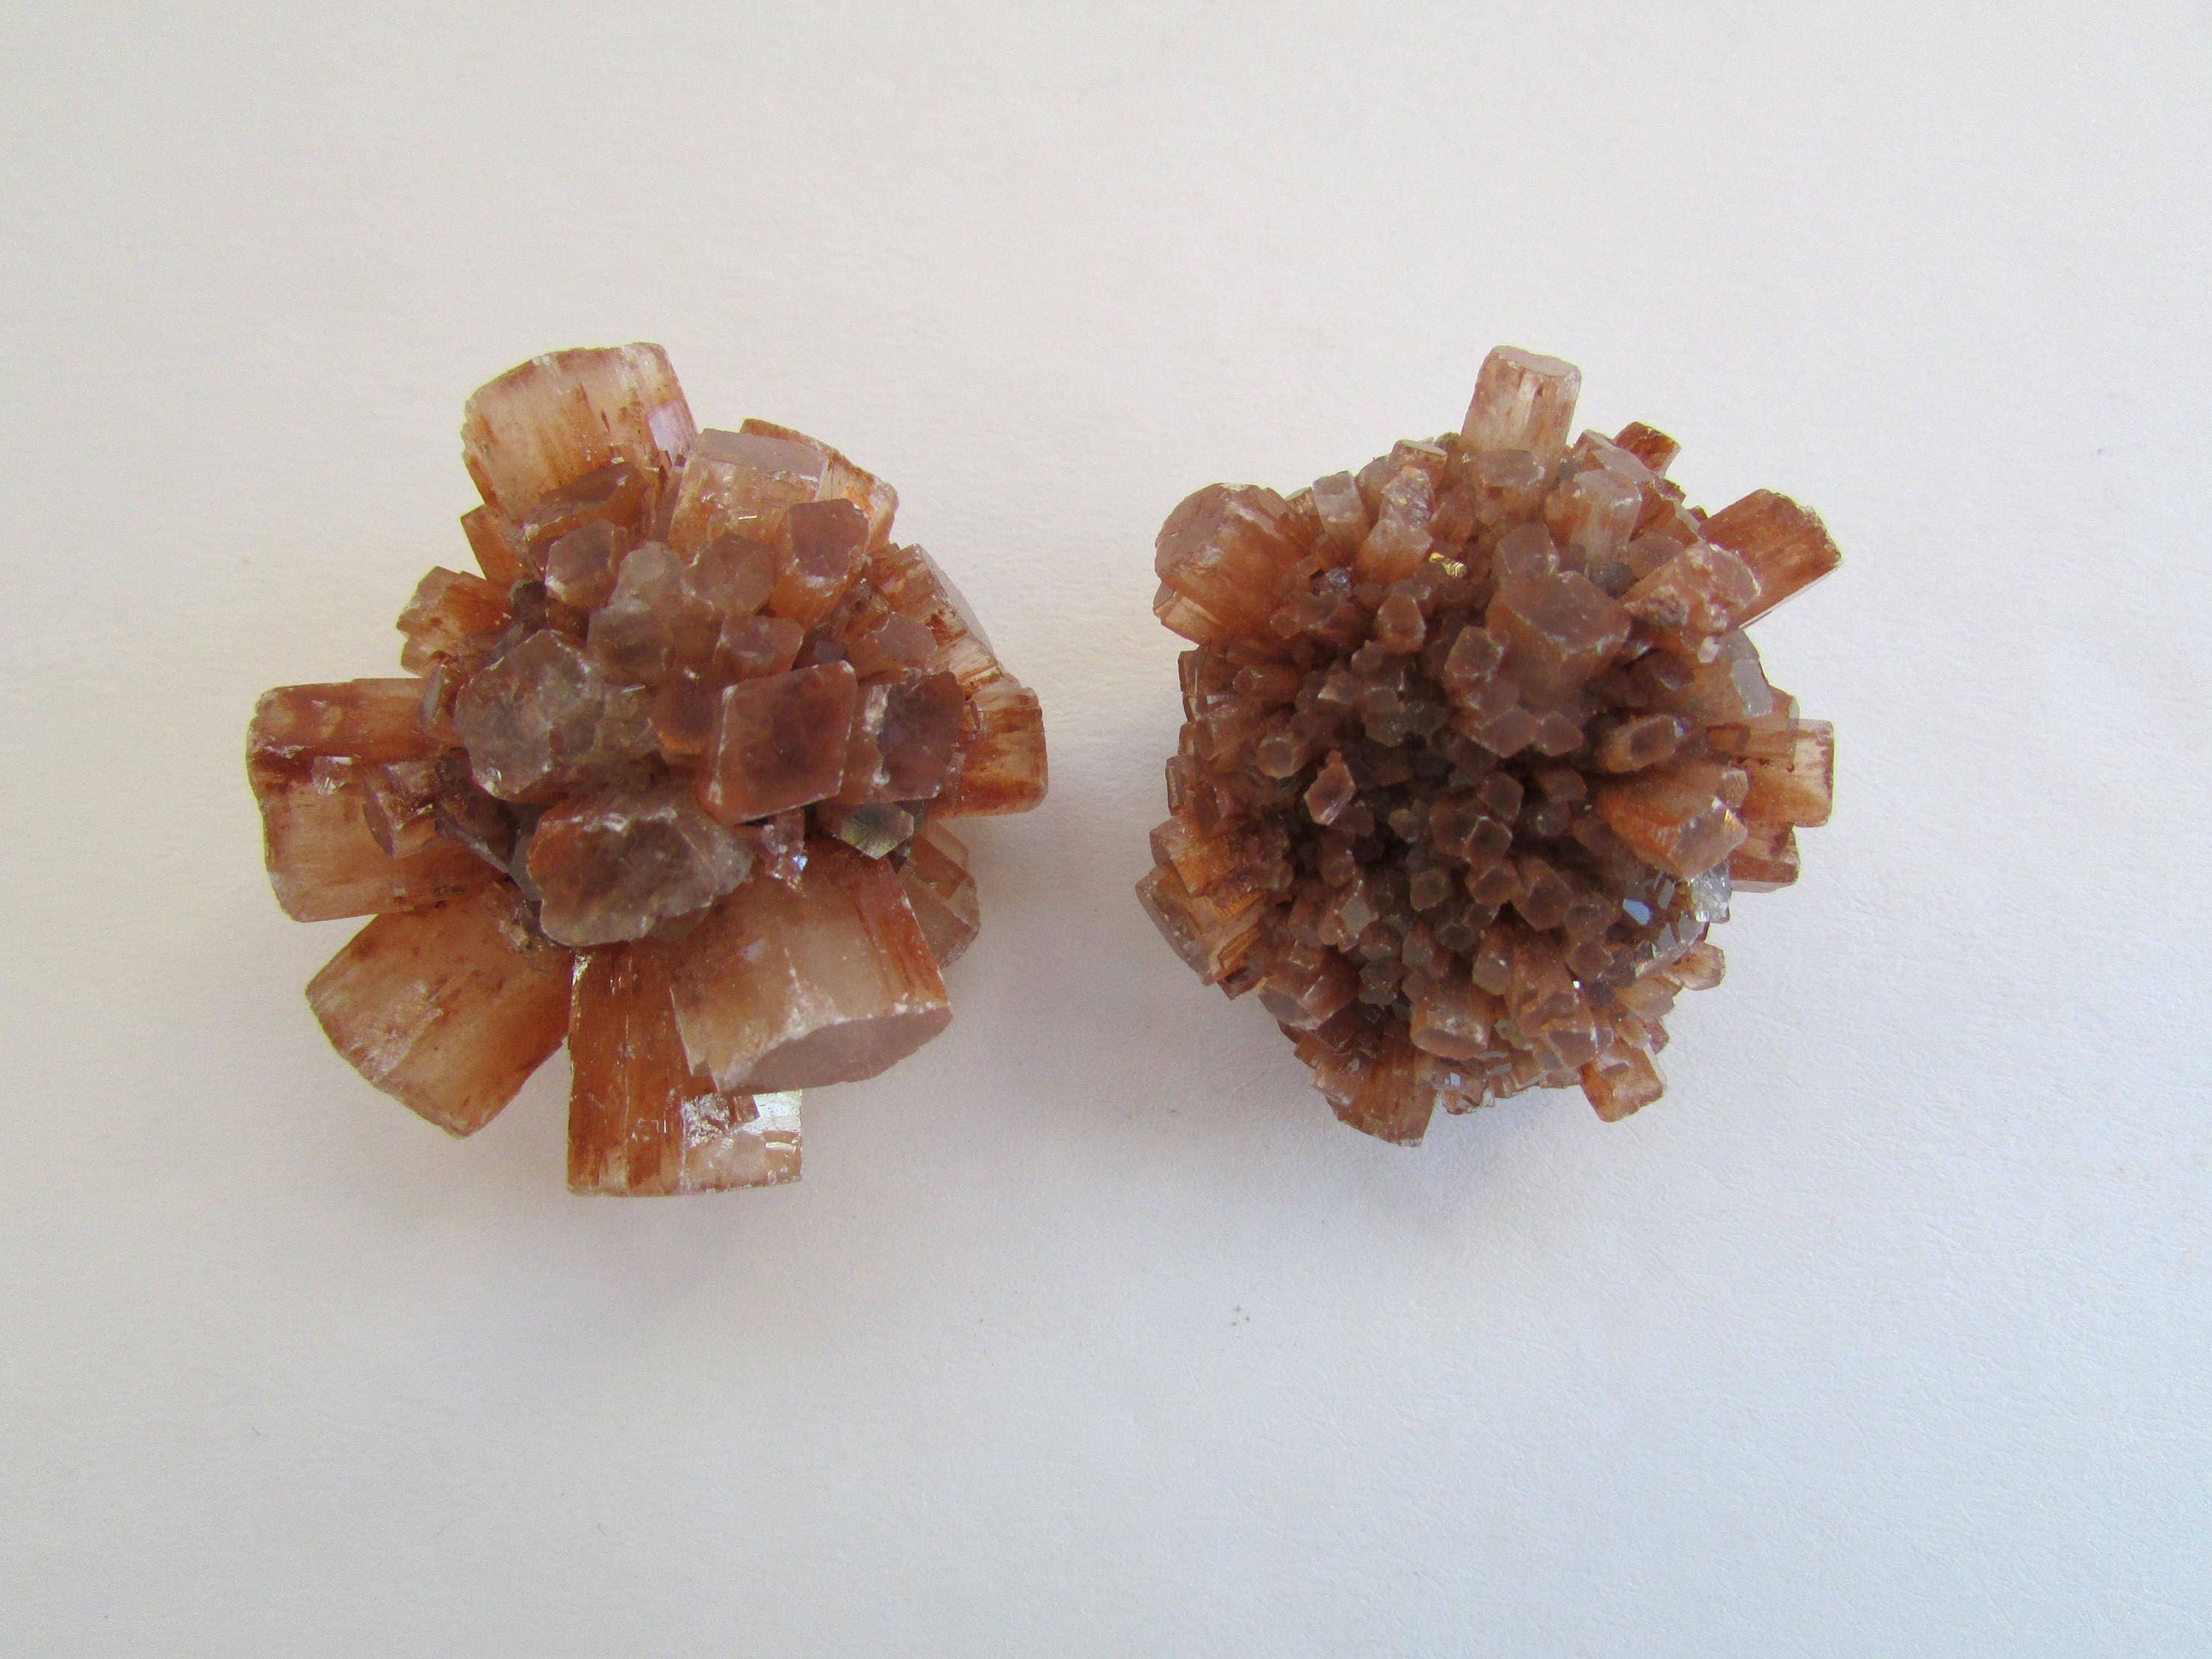 how to grow aragonite crystals